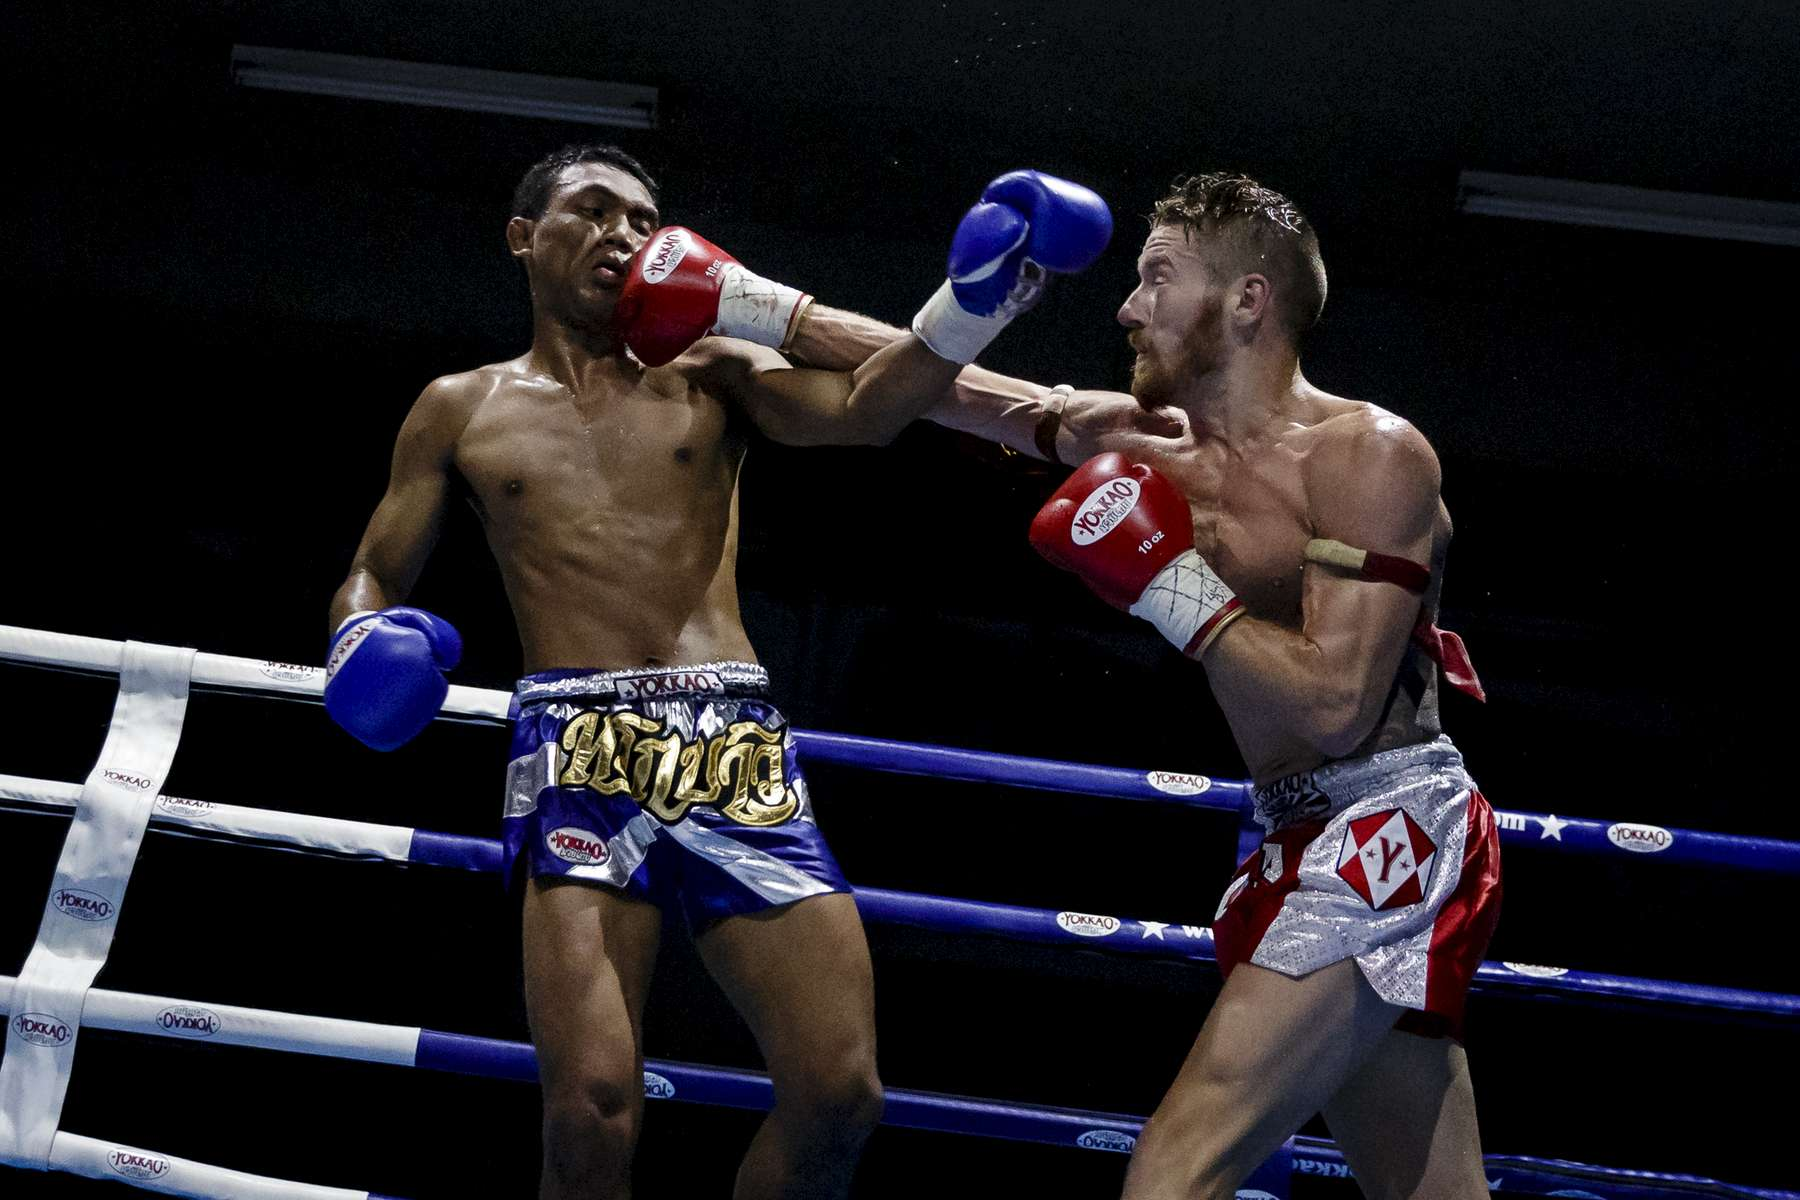 SYDNEY, NEW SOUTH WALES - MAY 21:    Gary Patterson strikes Phisit Suksawang during their professional Muay Thai bout at the SRG Thai Boxing Gym on May 21, 2016 in Sydney, Australia.  (Photo by Brook Mitchell/Getty Images)